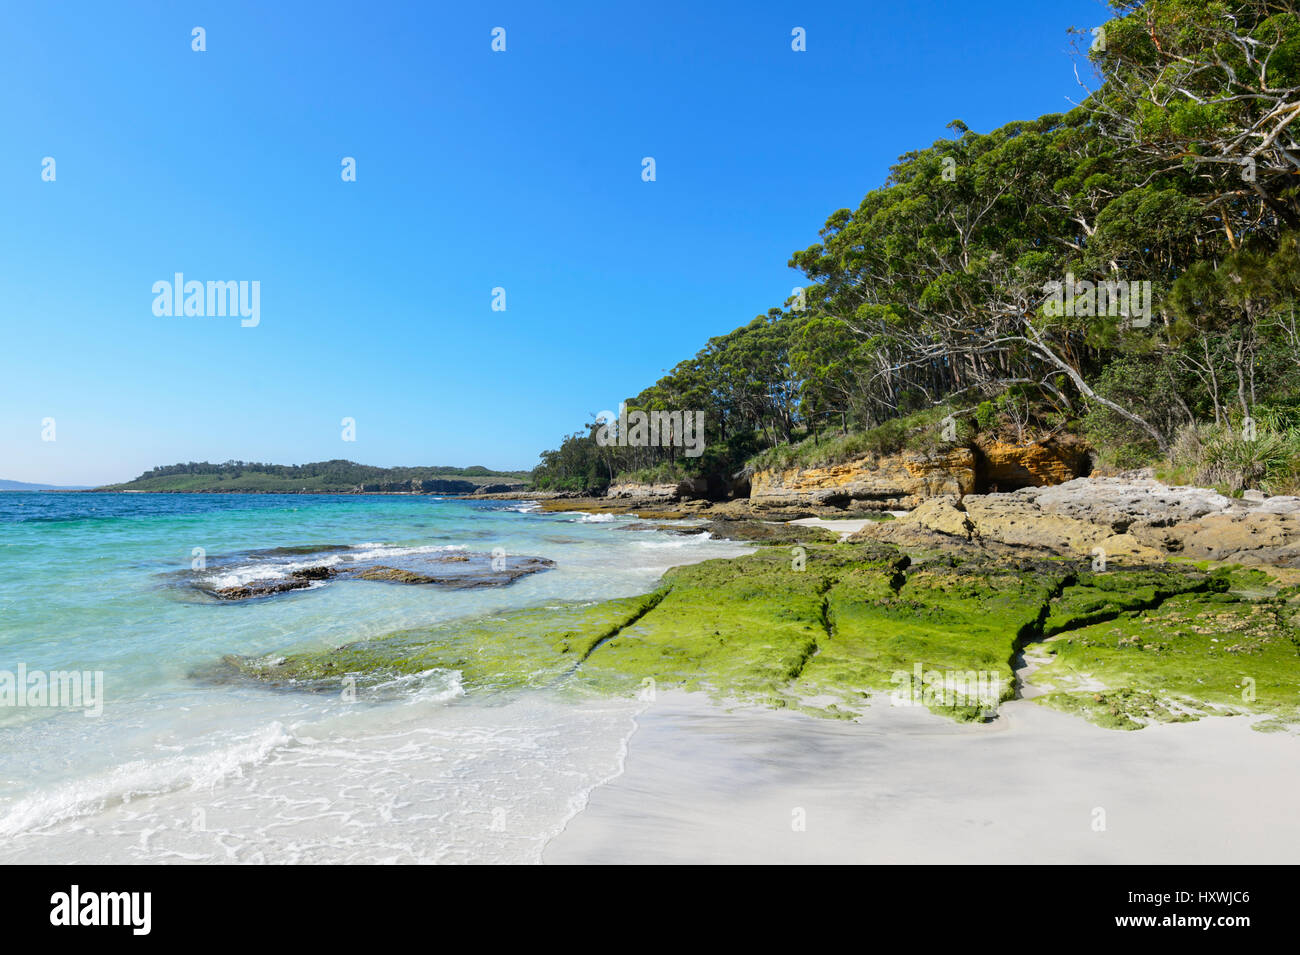 Southern end of Murray's Beach, Booderee National Park, Jervis Bay,  New South Wales, NSW, Australia - Stock Image